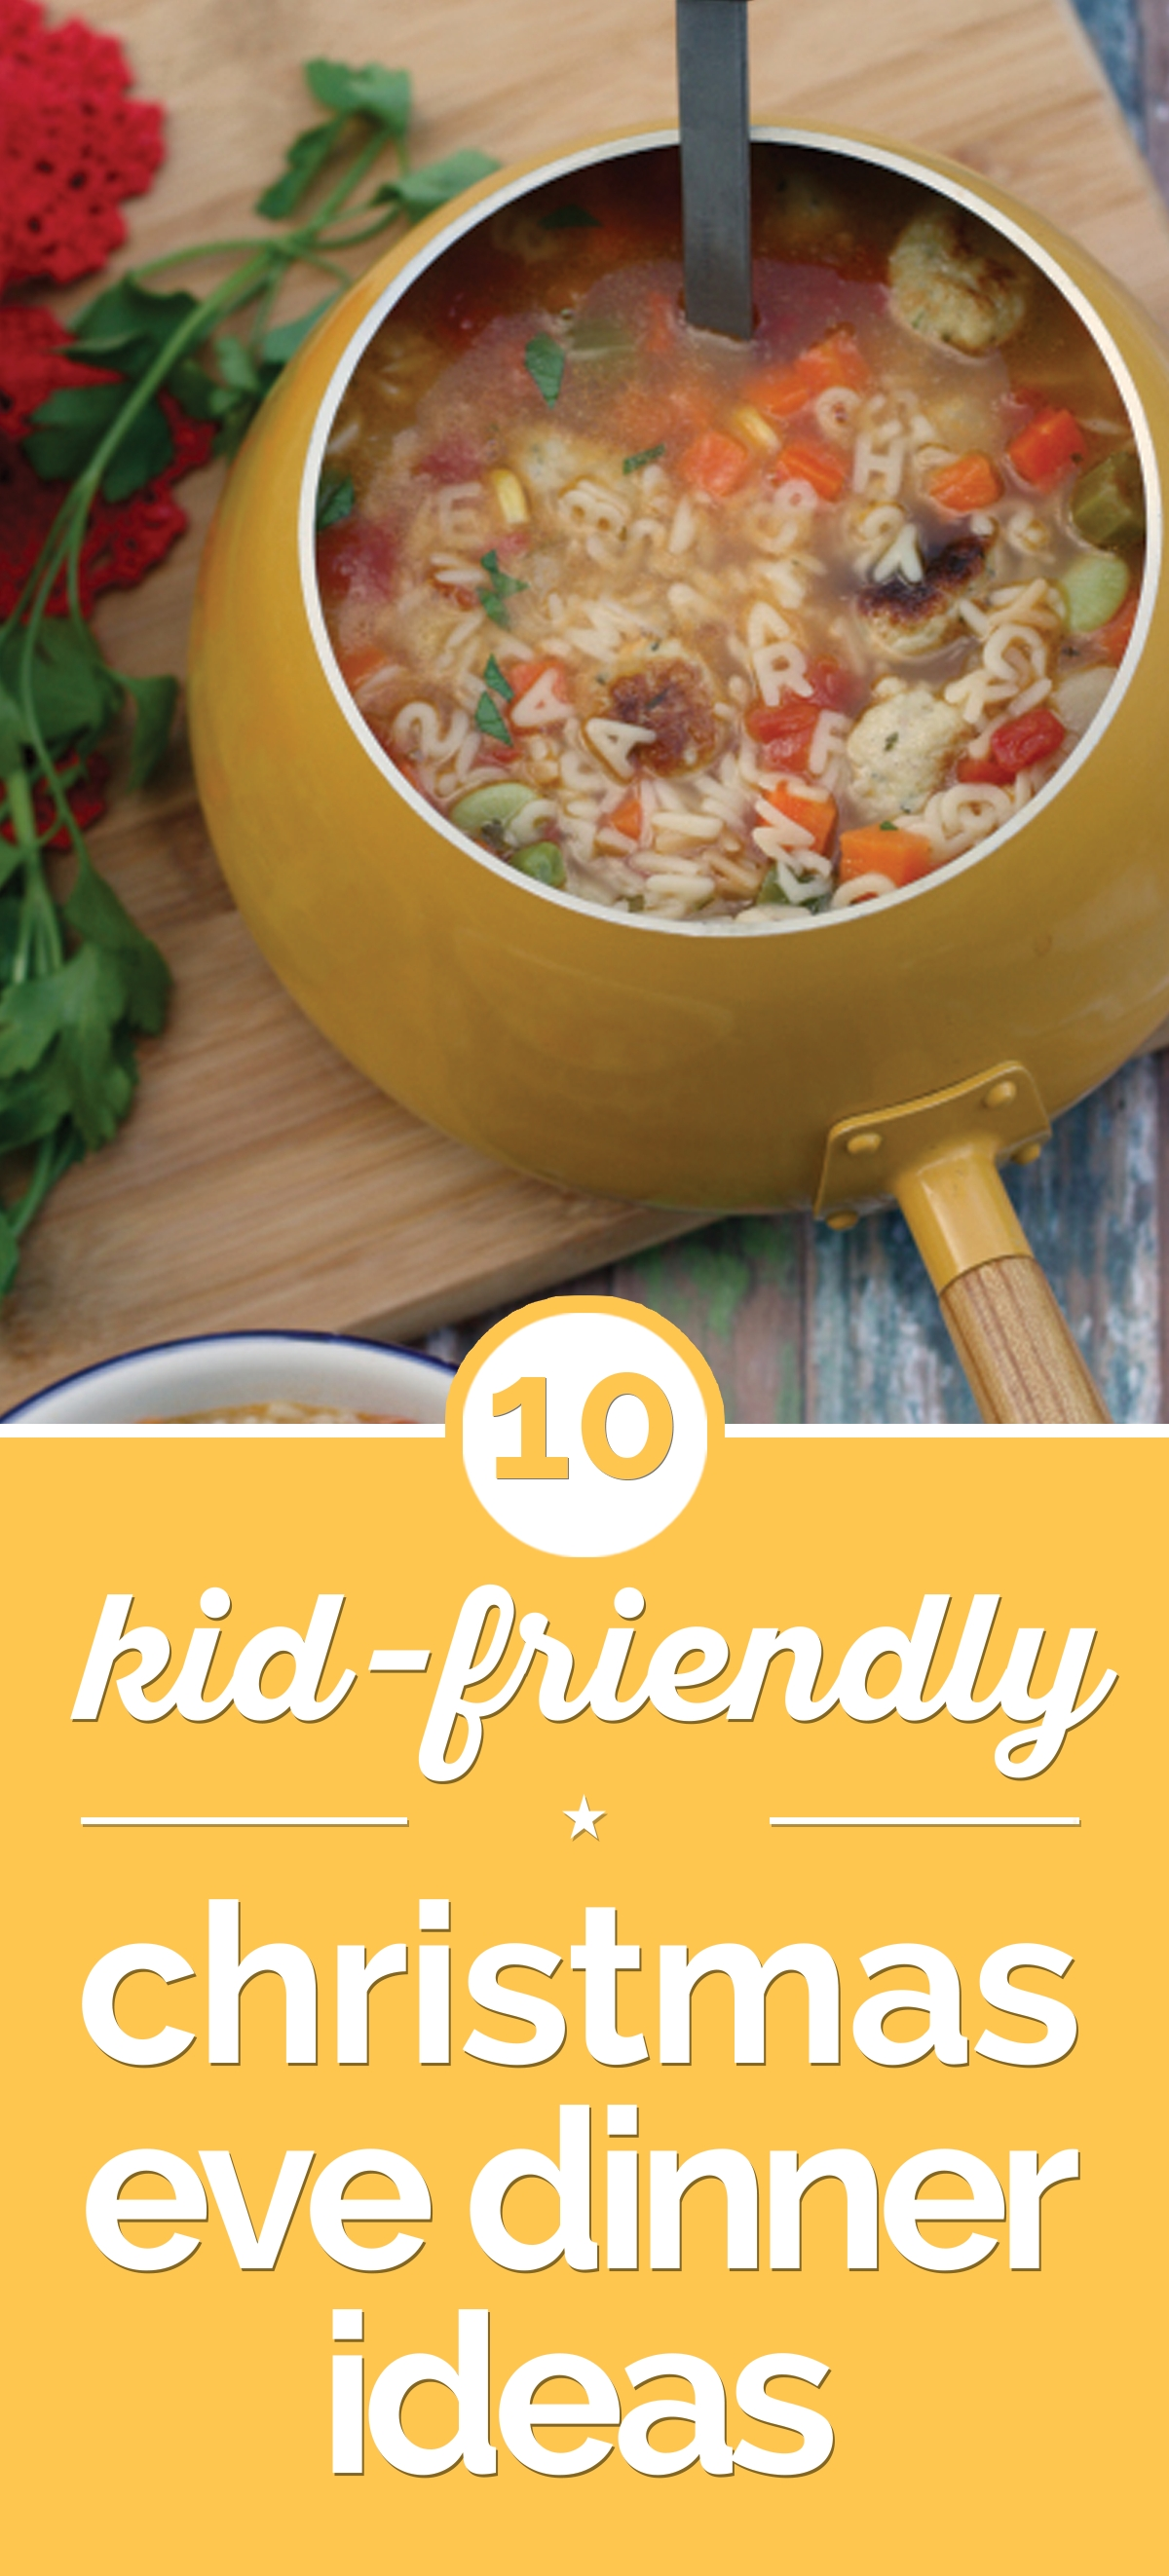 10 kid-friendly christmas eve dinner ideas - thegoodstuff